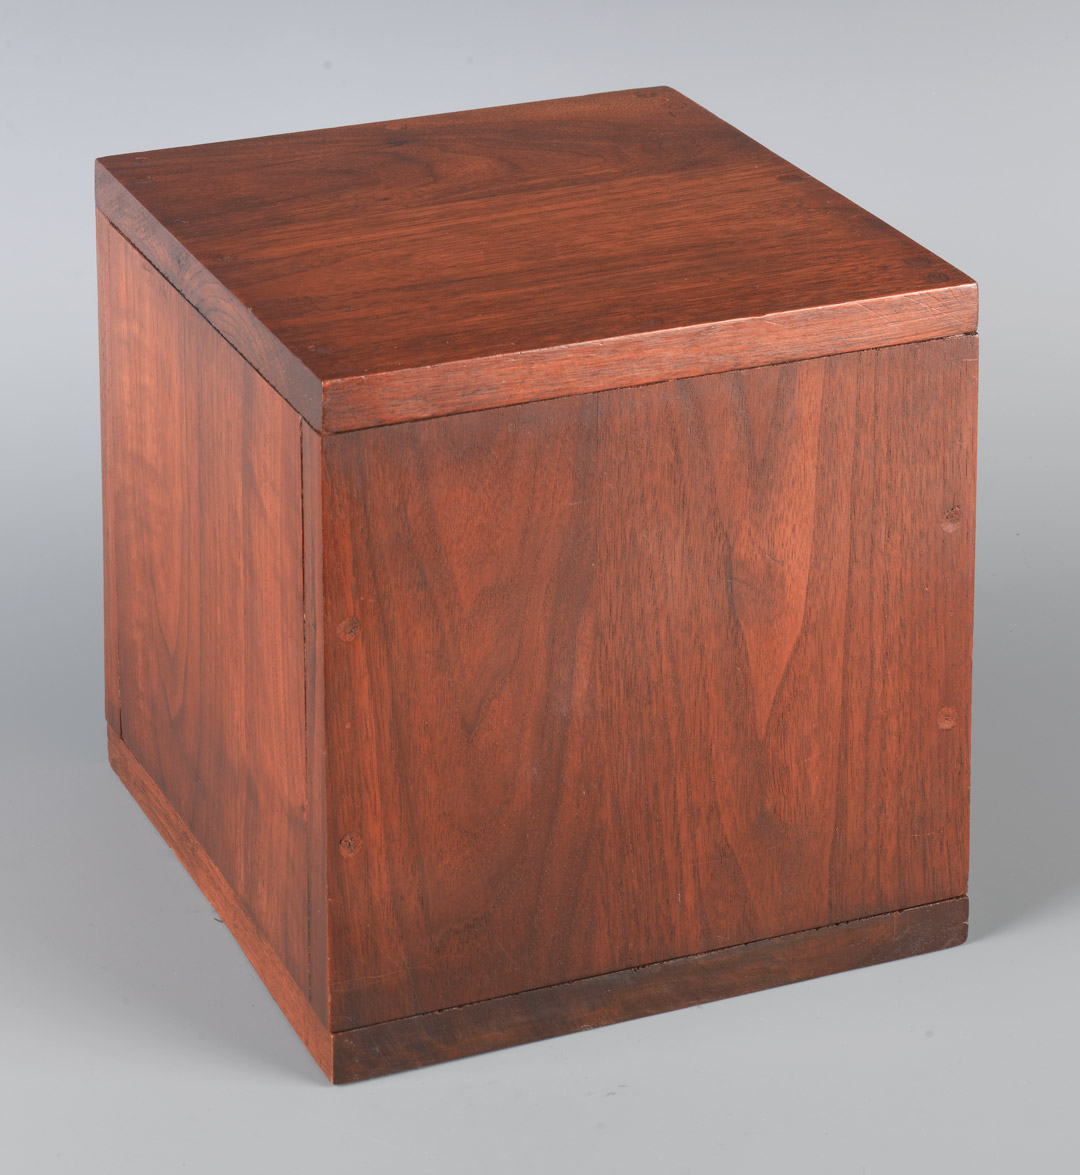 Box with the Sound of Its Own Making, 1961, Robert Morris, Wood, internal speaker, Wooden Cube: 9 3/4 x 9 3/4 x 9 3/4 in. (24.8 x 24.8 x 24.8cm) Overall: 46 x 9 3/4 x 9 3/4in. (116.8 x 24.8 x 24.8cm); TRT 3.5 hours, Gift of the Virginia and Bagley Wright Collection, 82.190, © 2007 Robert Morris / Artists Rights Society (ARS), New York.